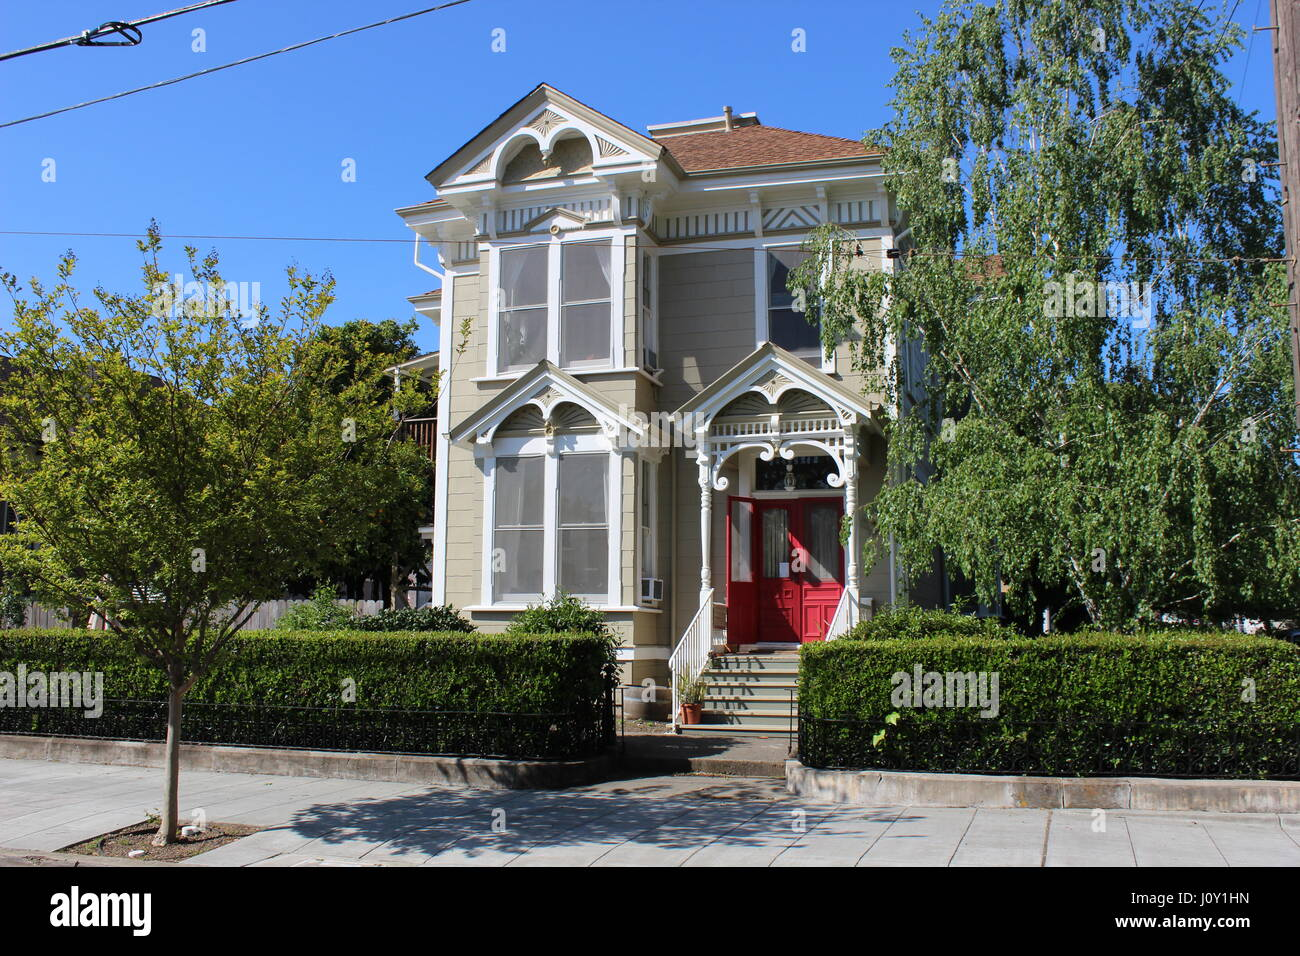 Eastlake or Stick-style house built around 1885 in Napa, California - Stock Image